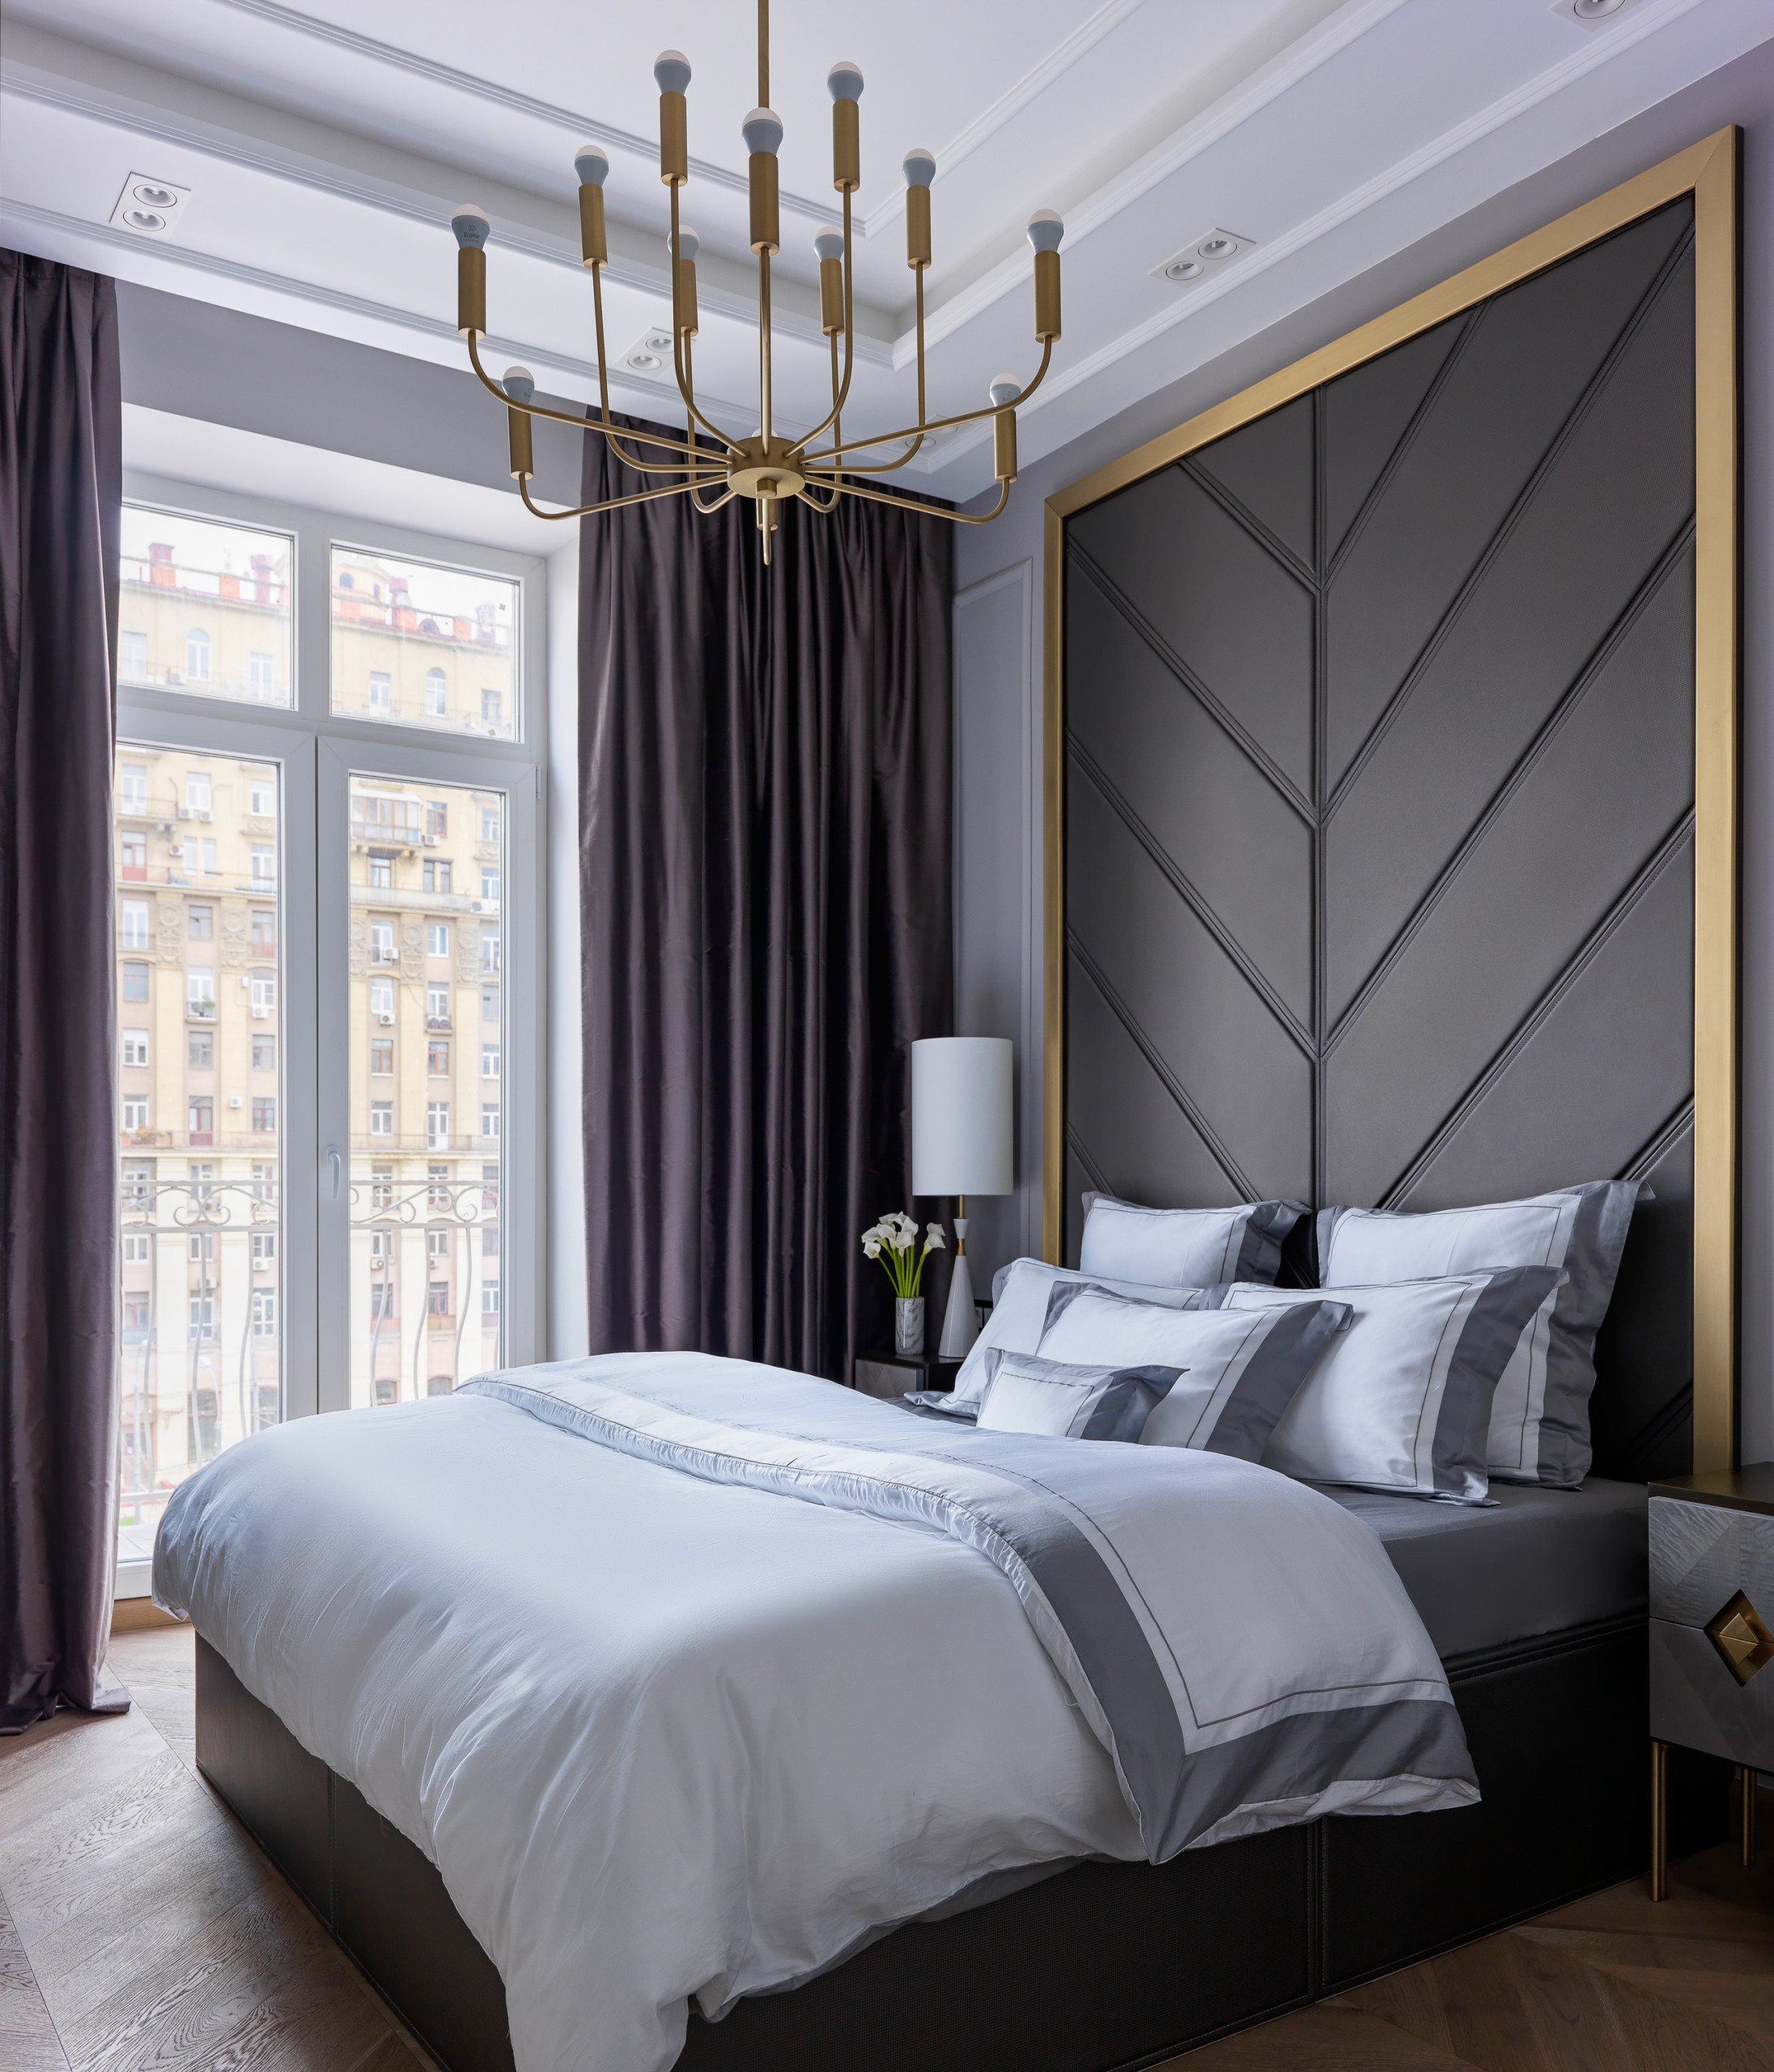 75 Beautiful Wall Paneling Bedroom Pictures Ideas April 2021 Houzz